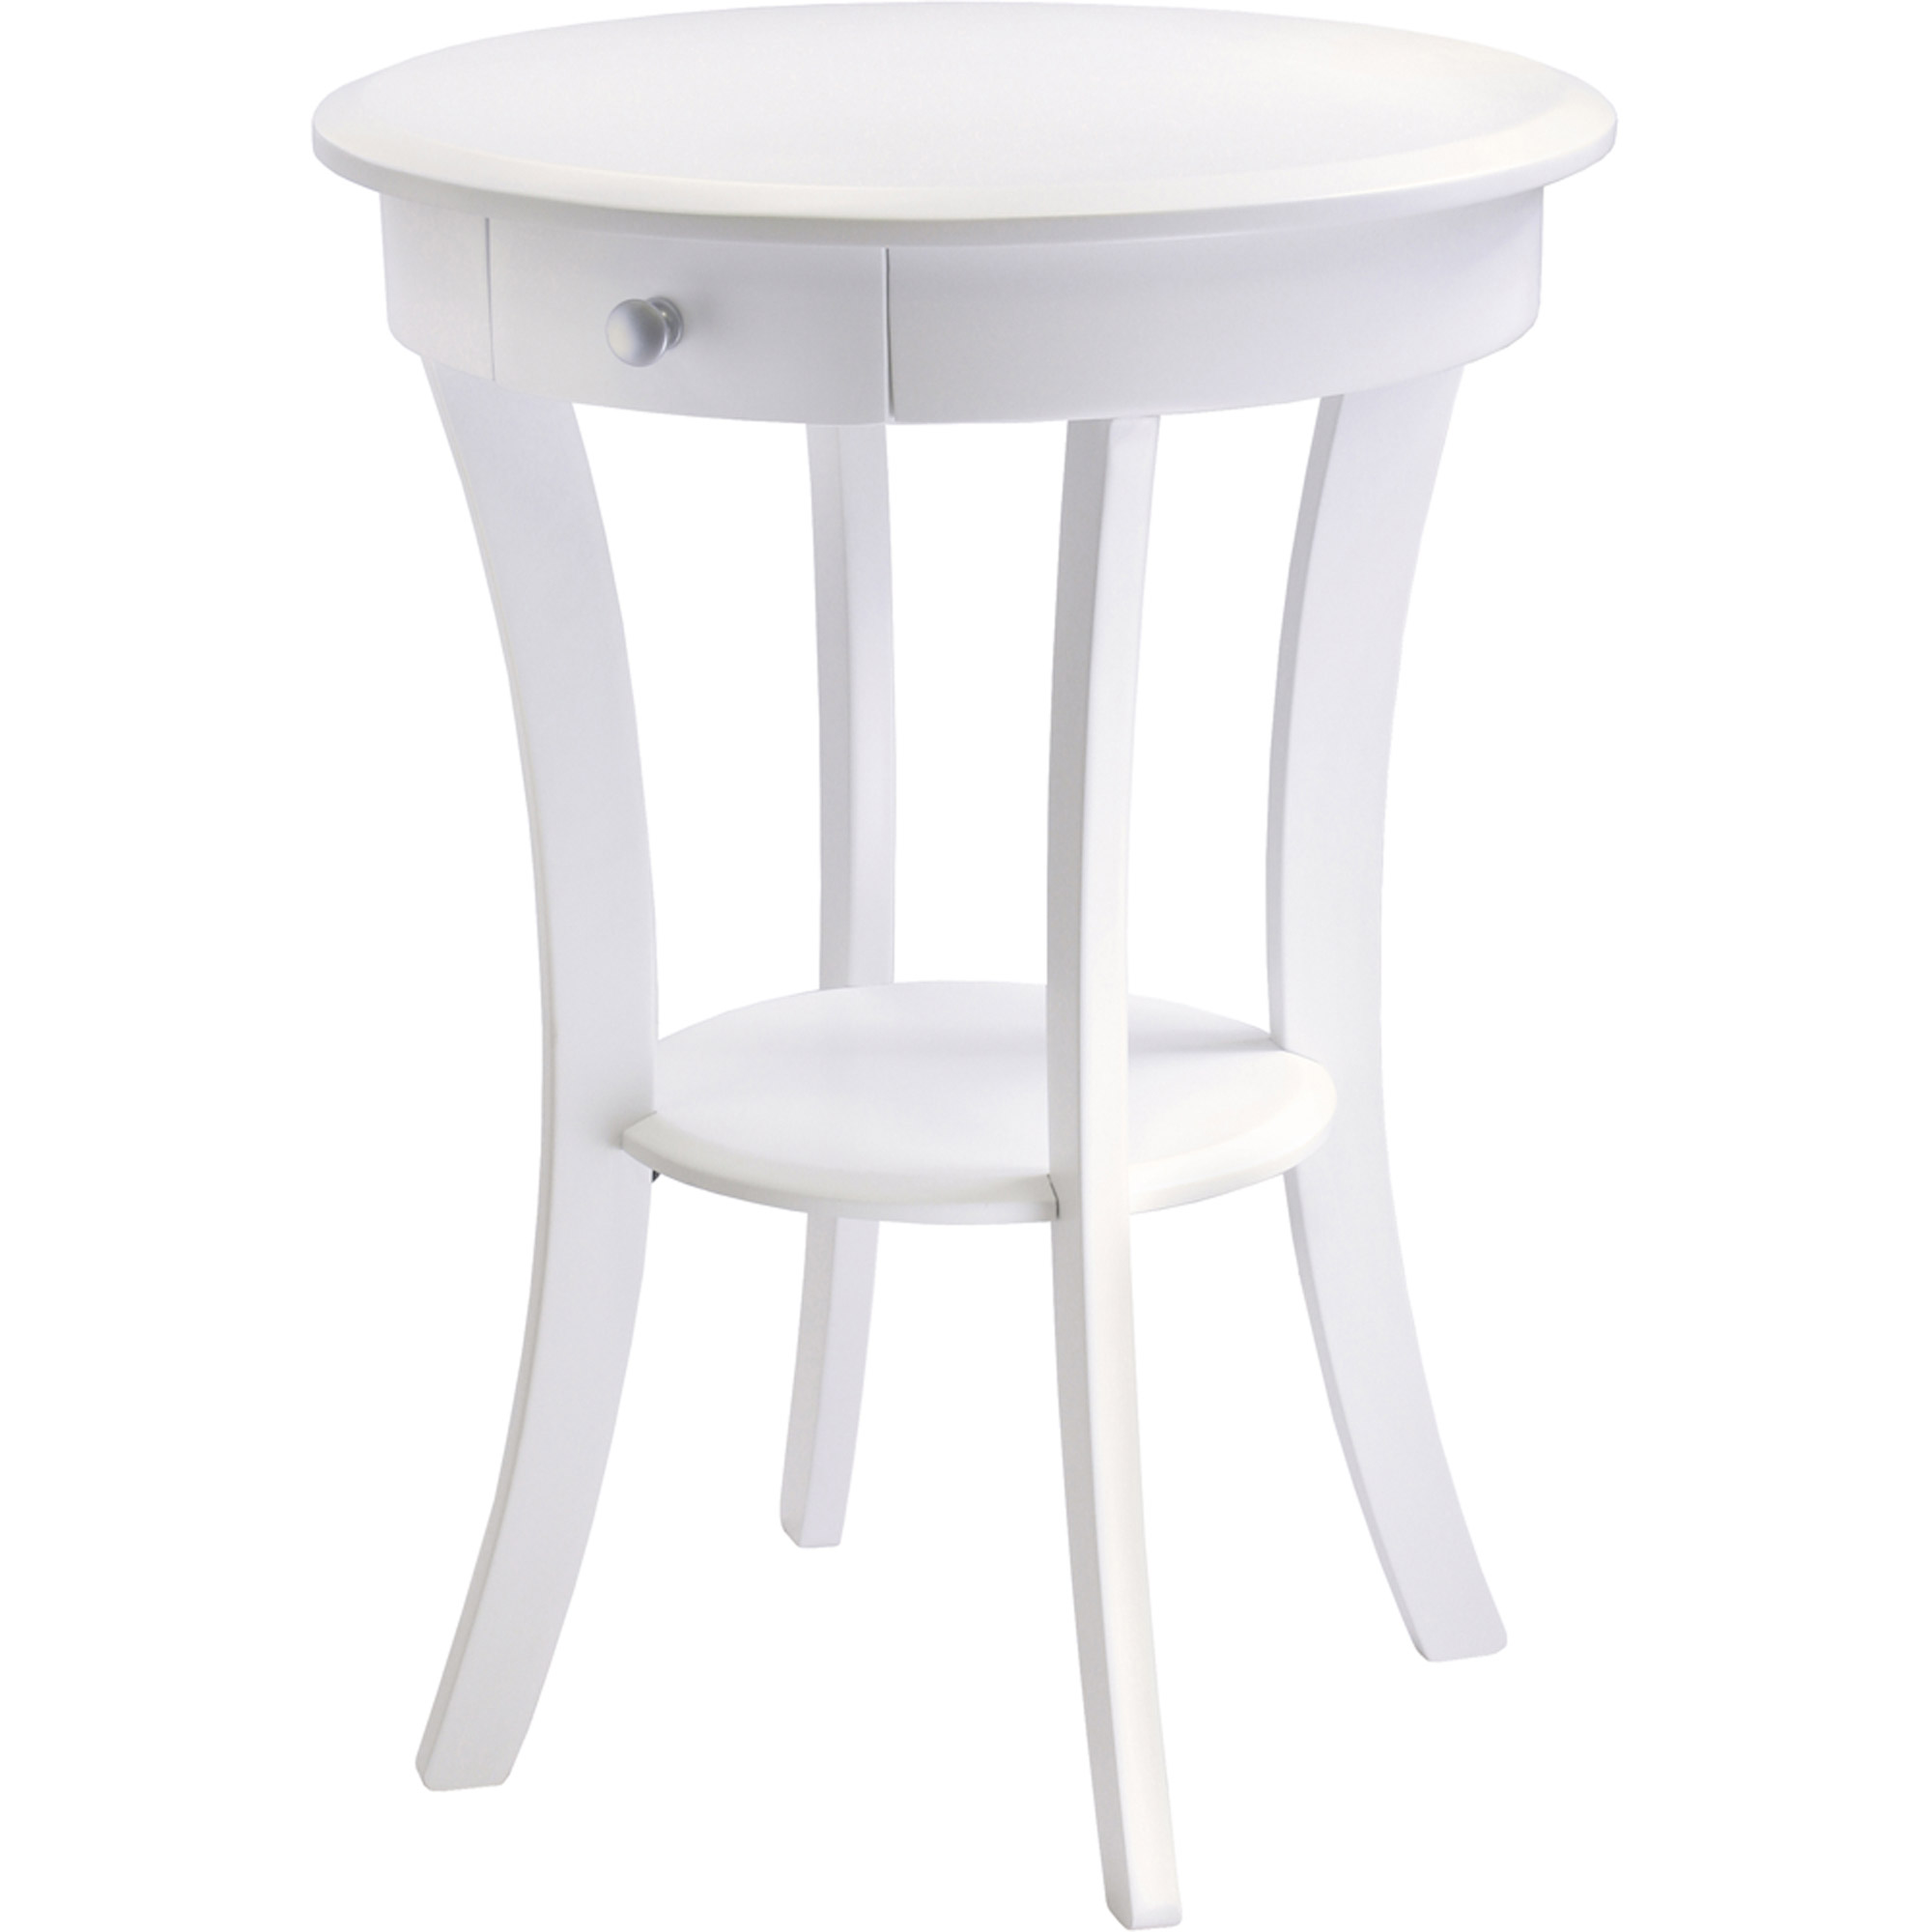 sasha round accent table side tables small marble grey console target tiffany style lamp shades black kitchen glass top wine rack white outdoor narrow sofa behind couch cloth